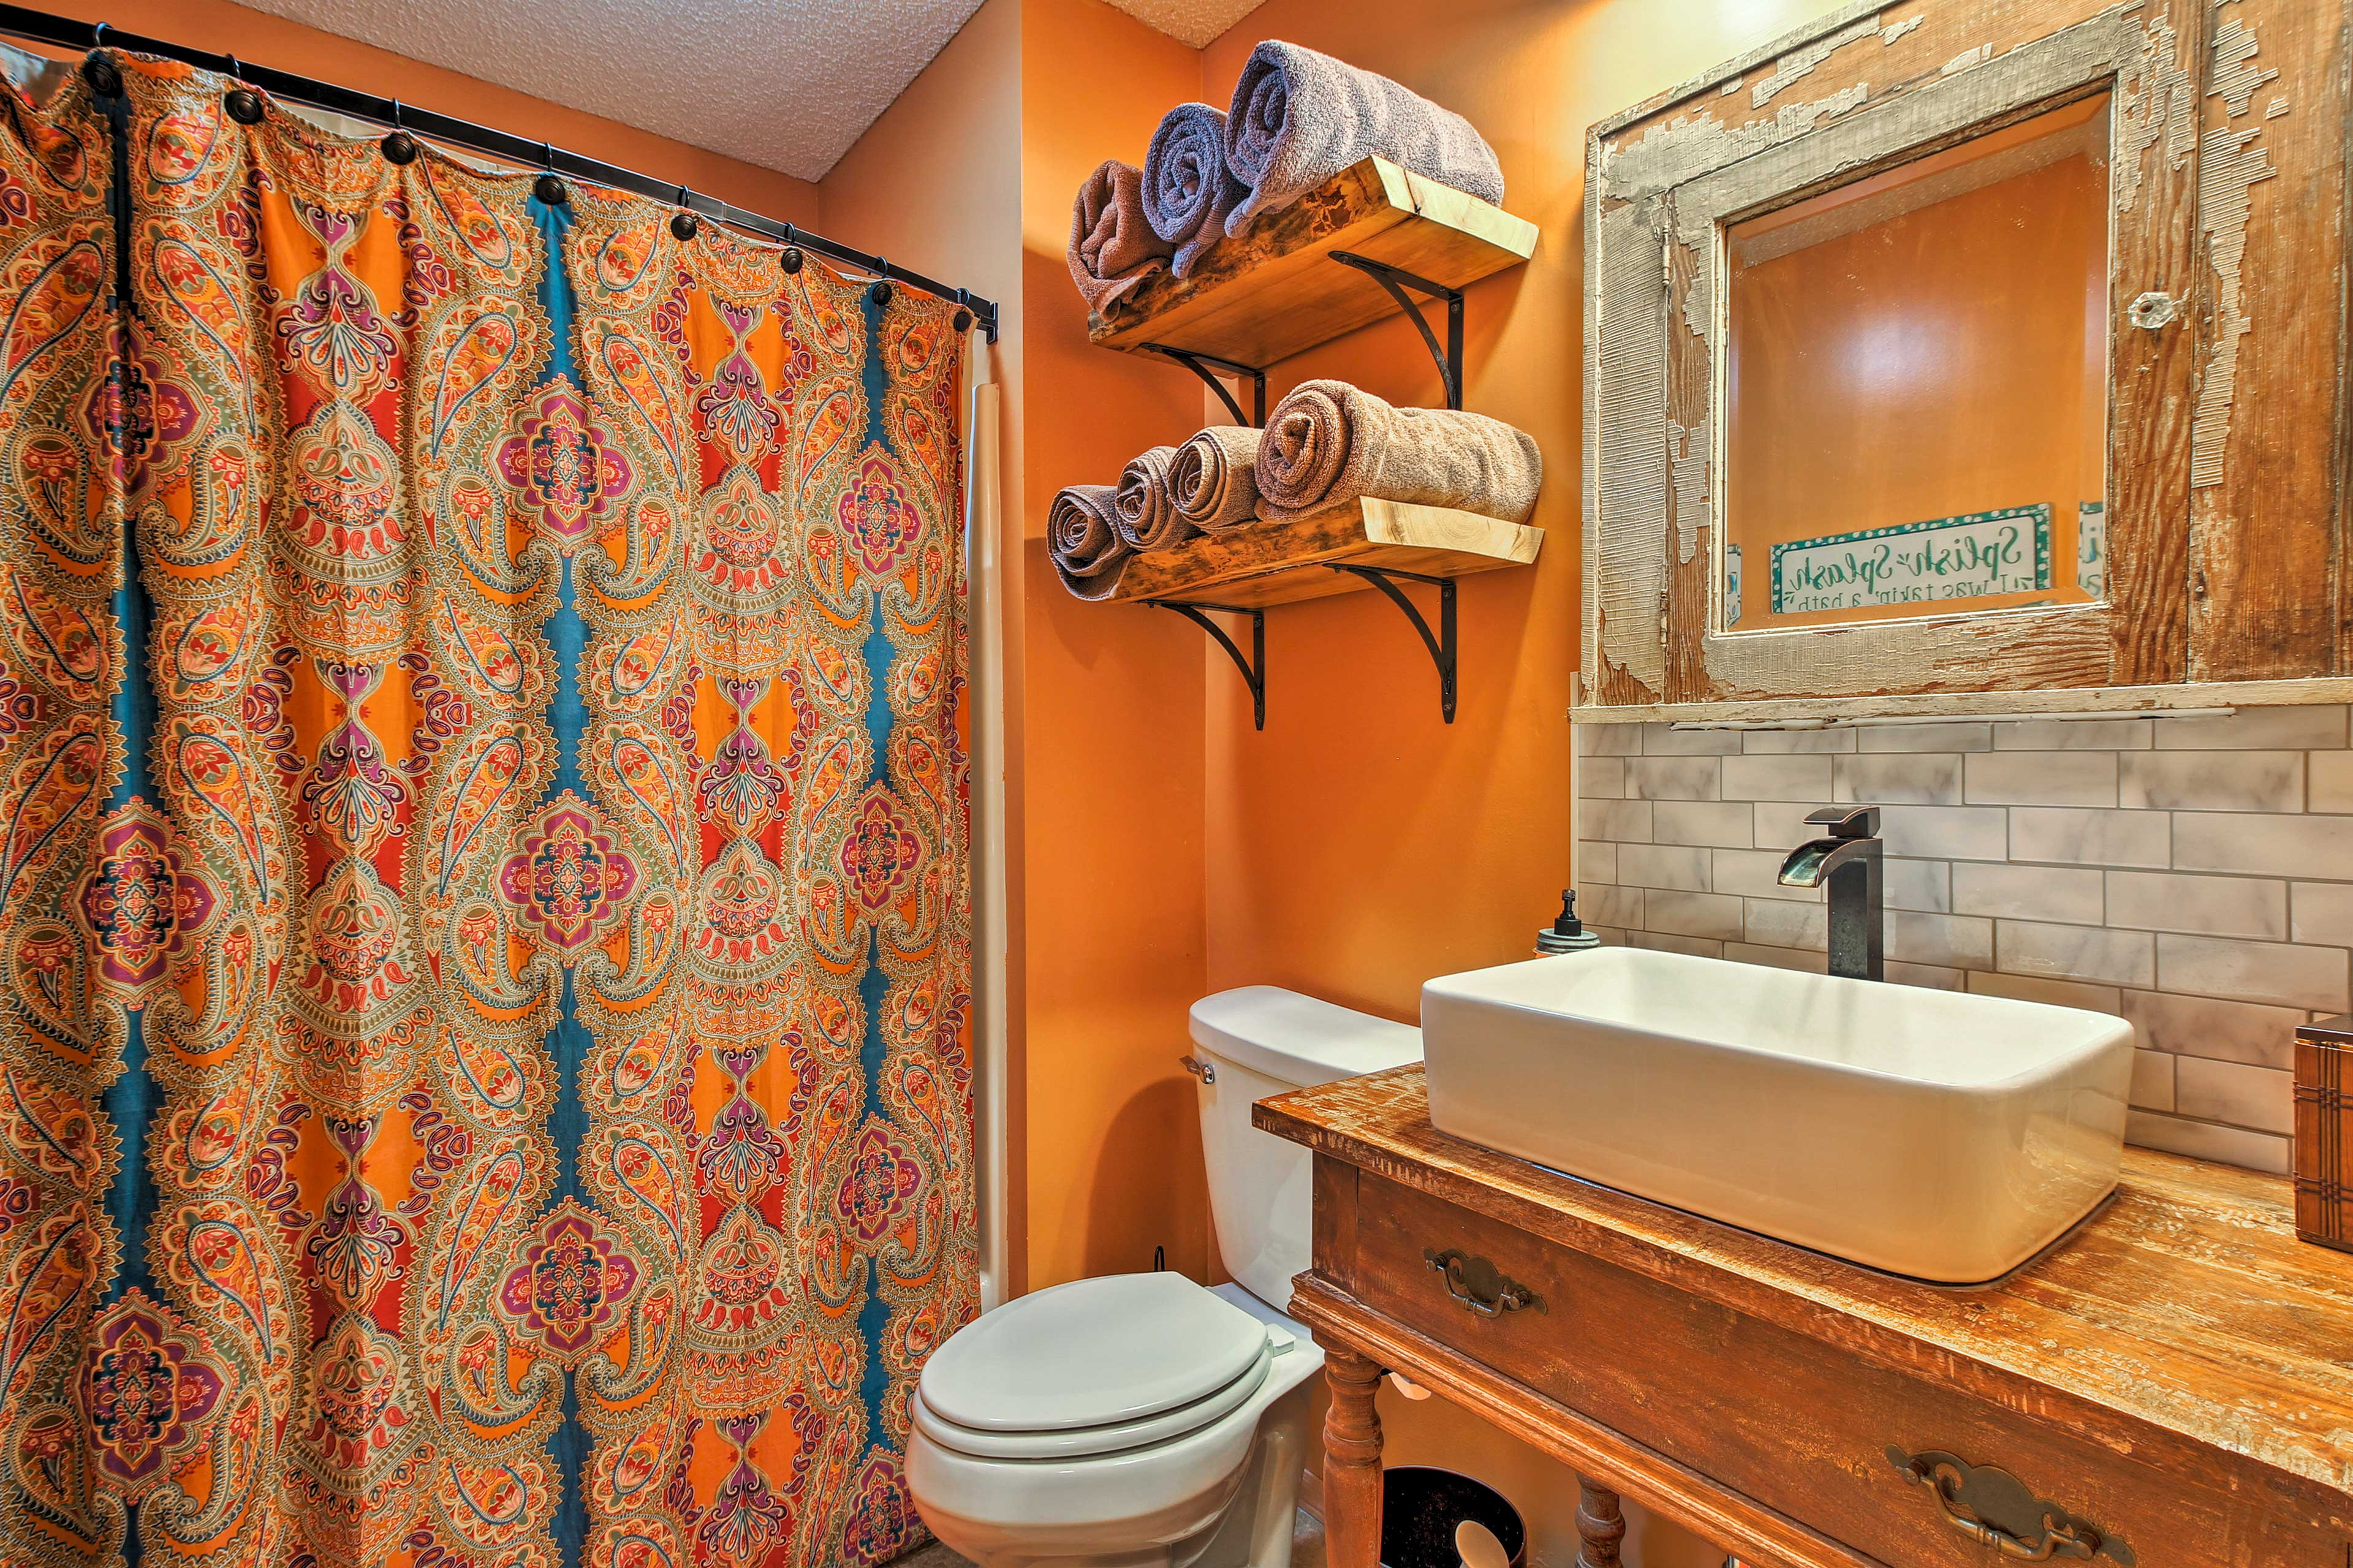 Rinse off with a shower in this stylish bathroom.